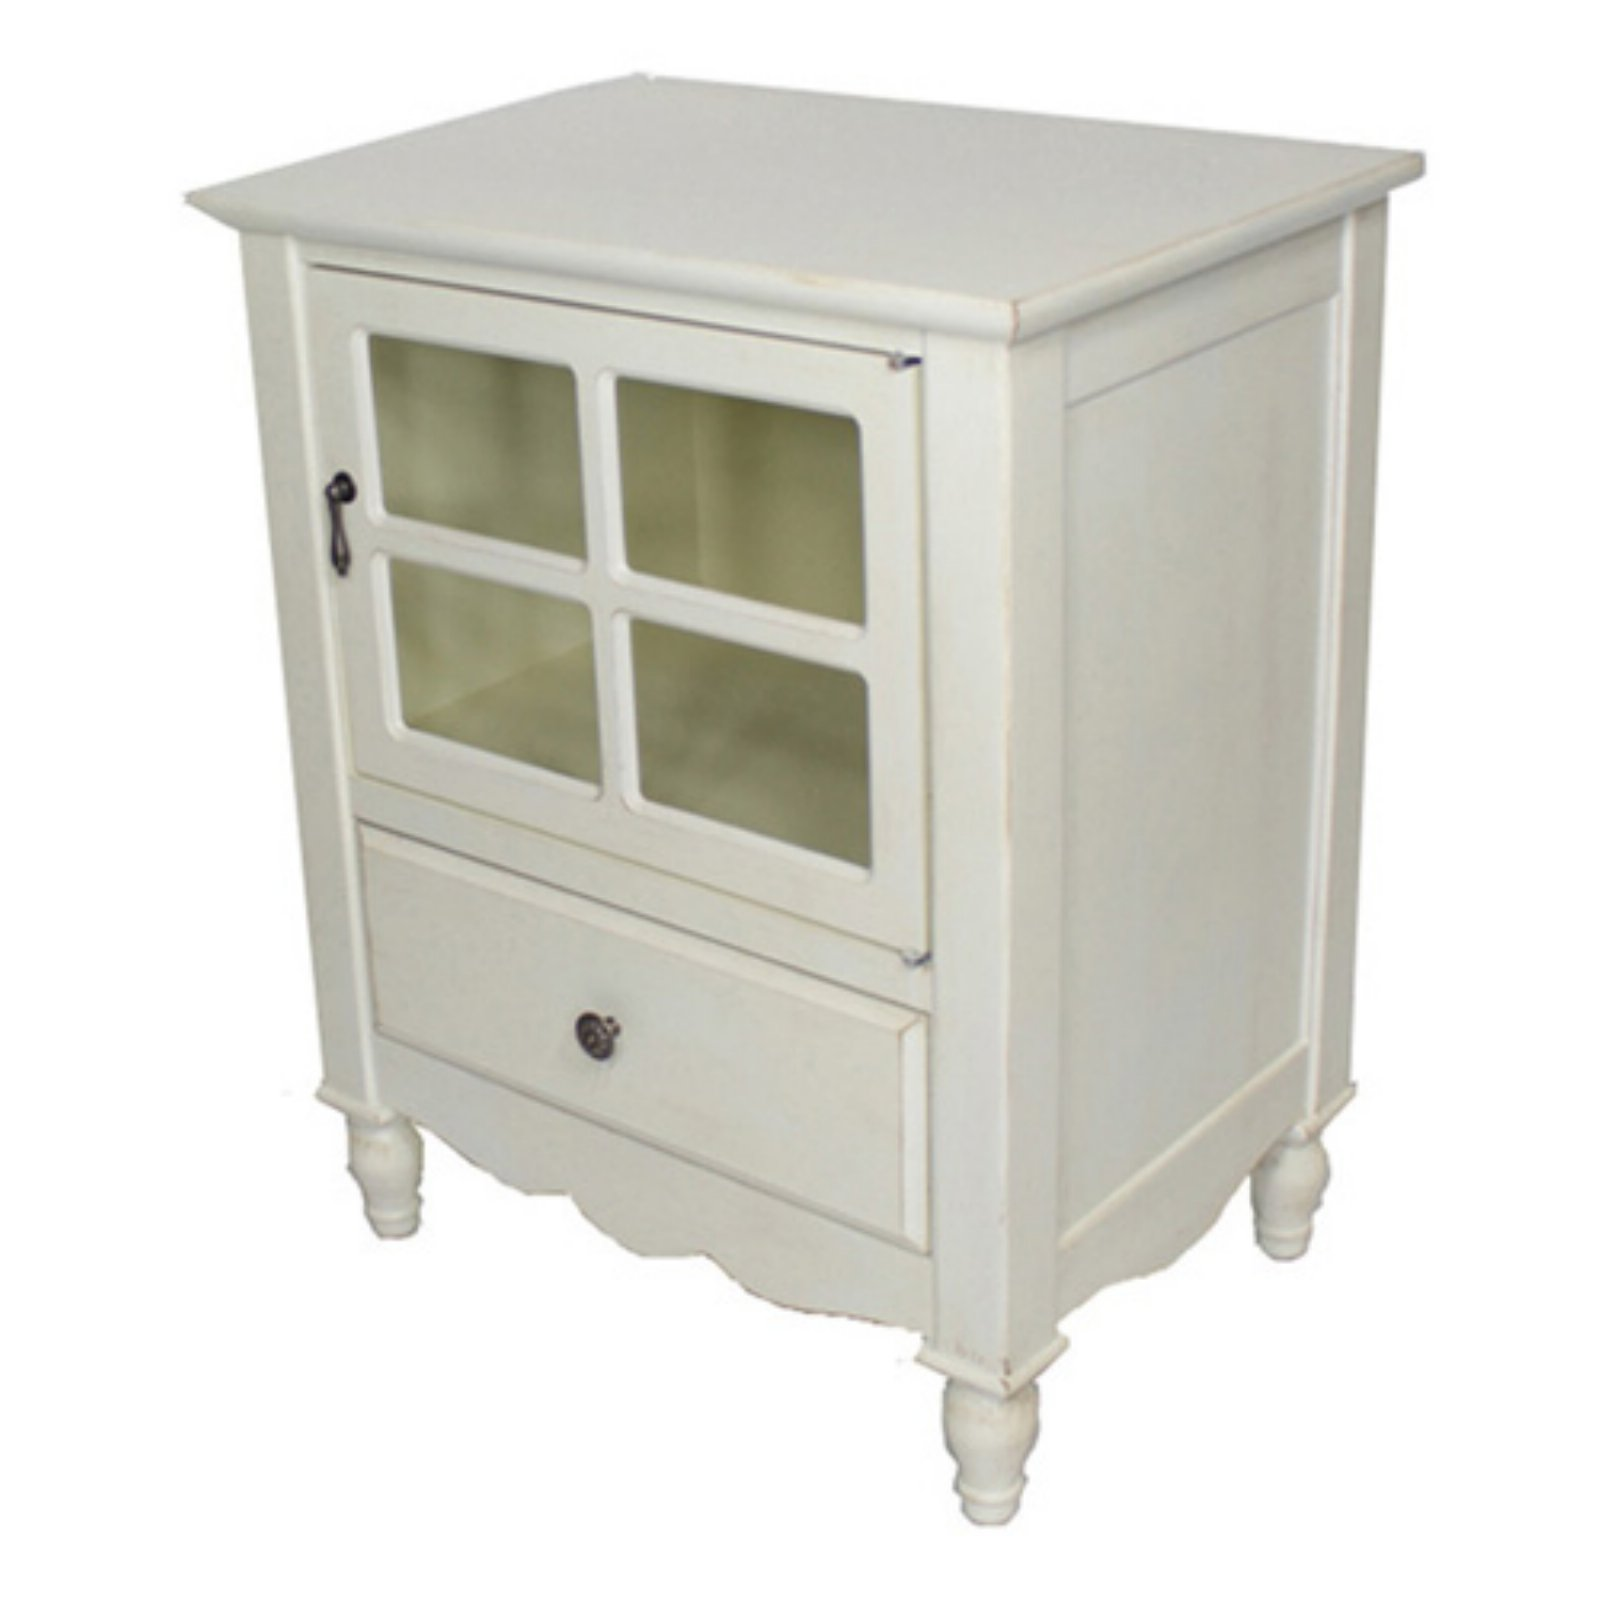 Heather Ann Creations Vivian Paned Glass Small Accent Cabinet